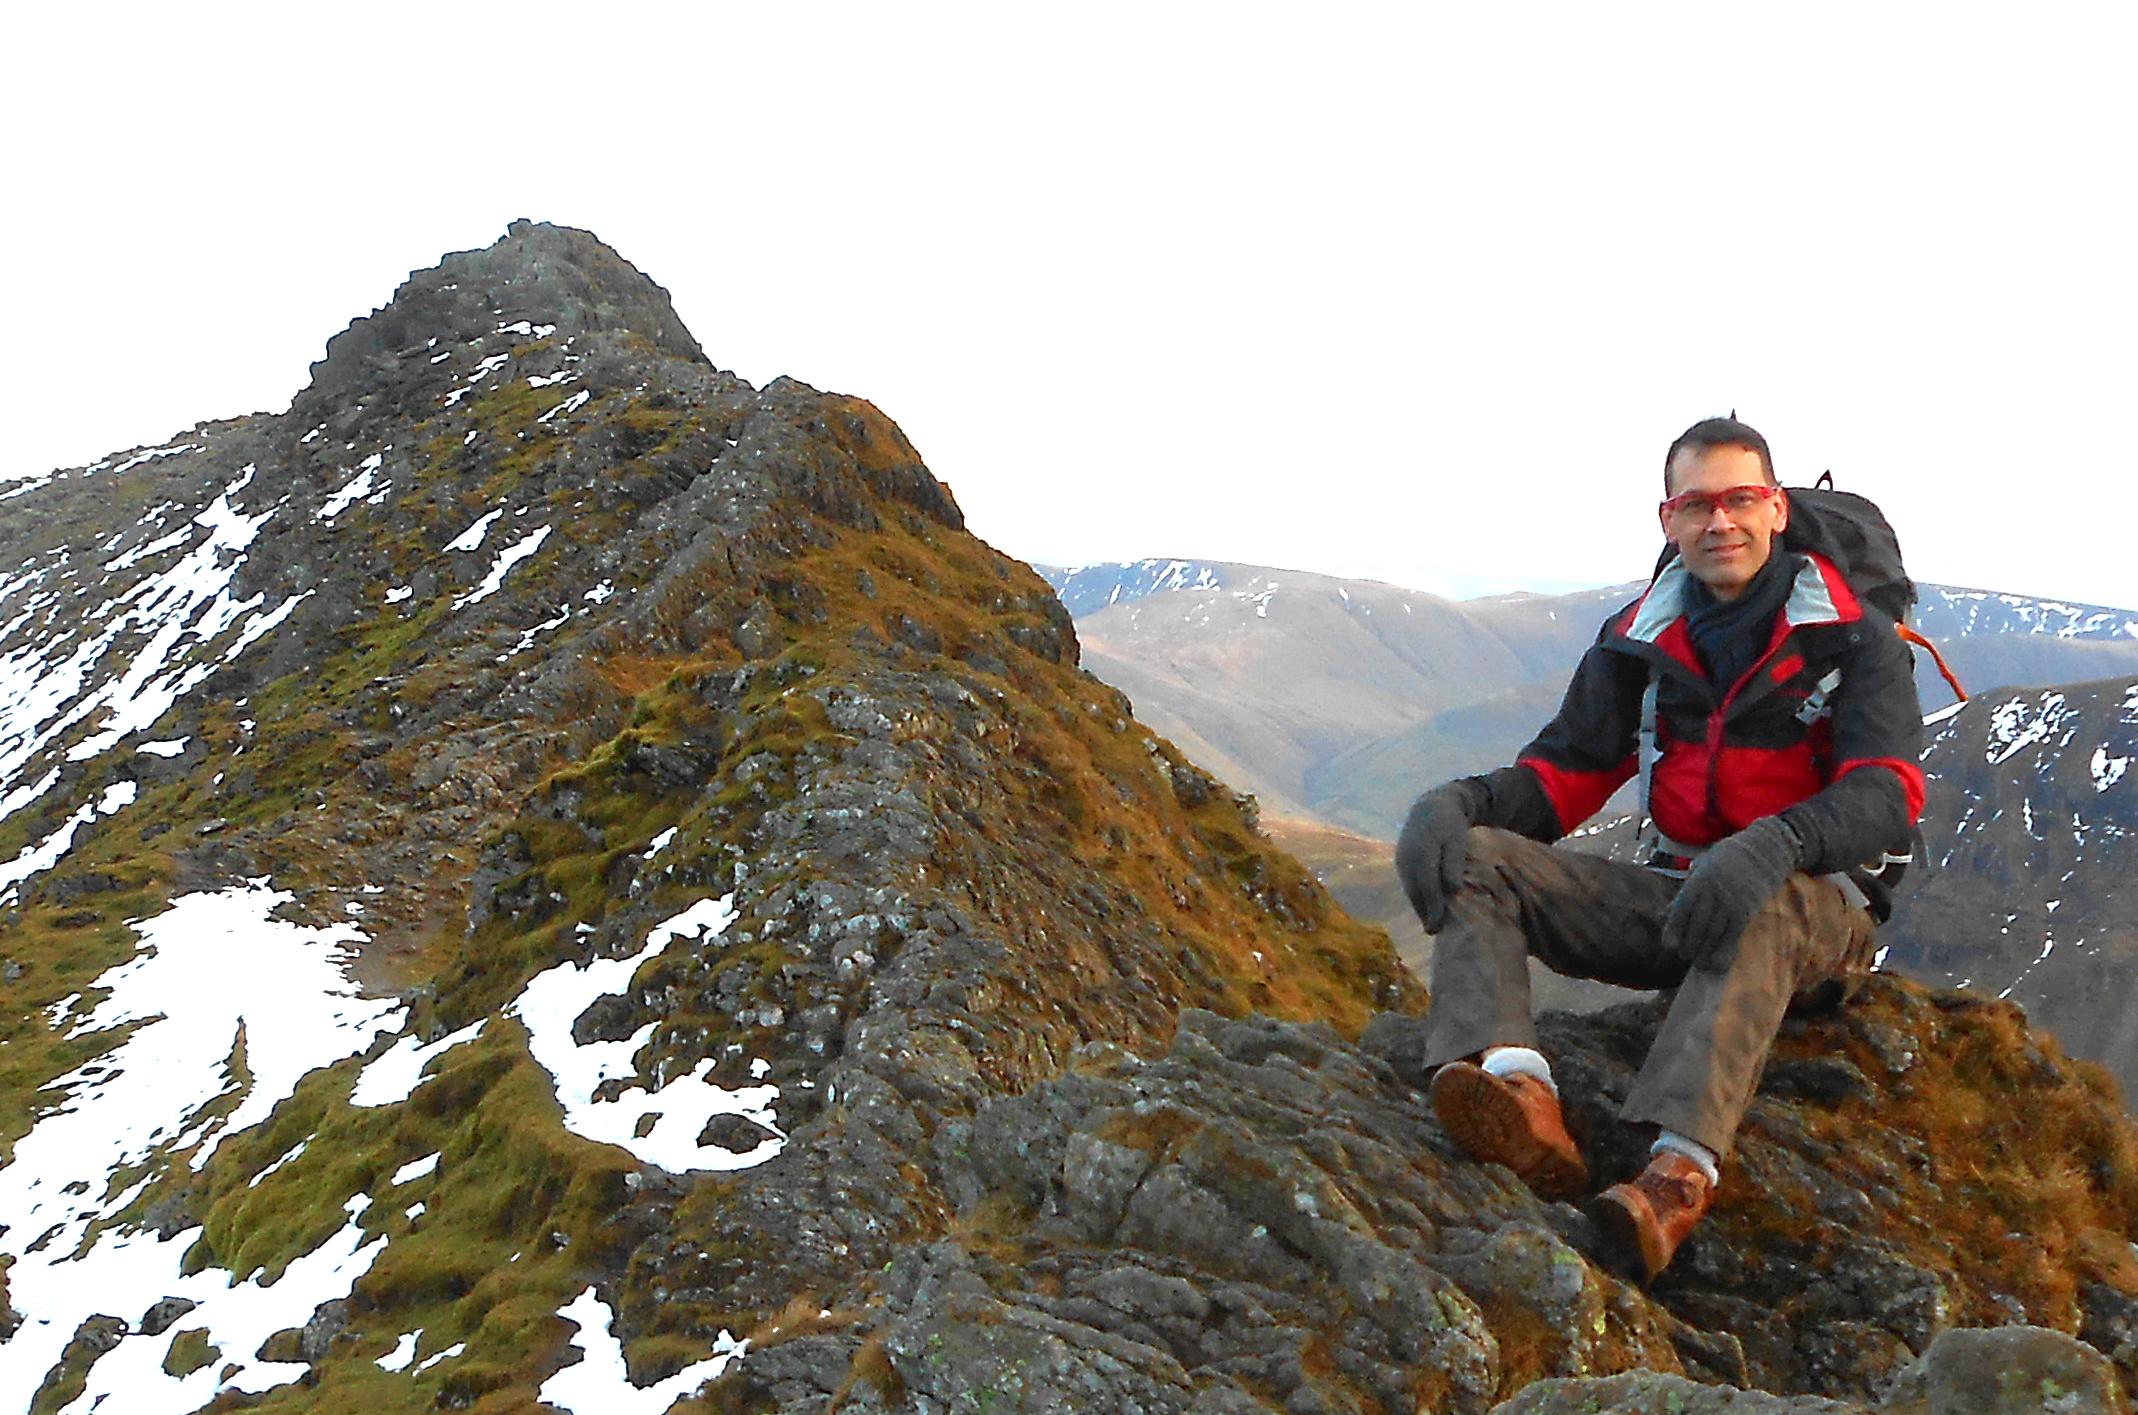 Enjoying the view on Striding Edge